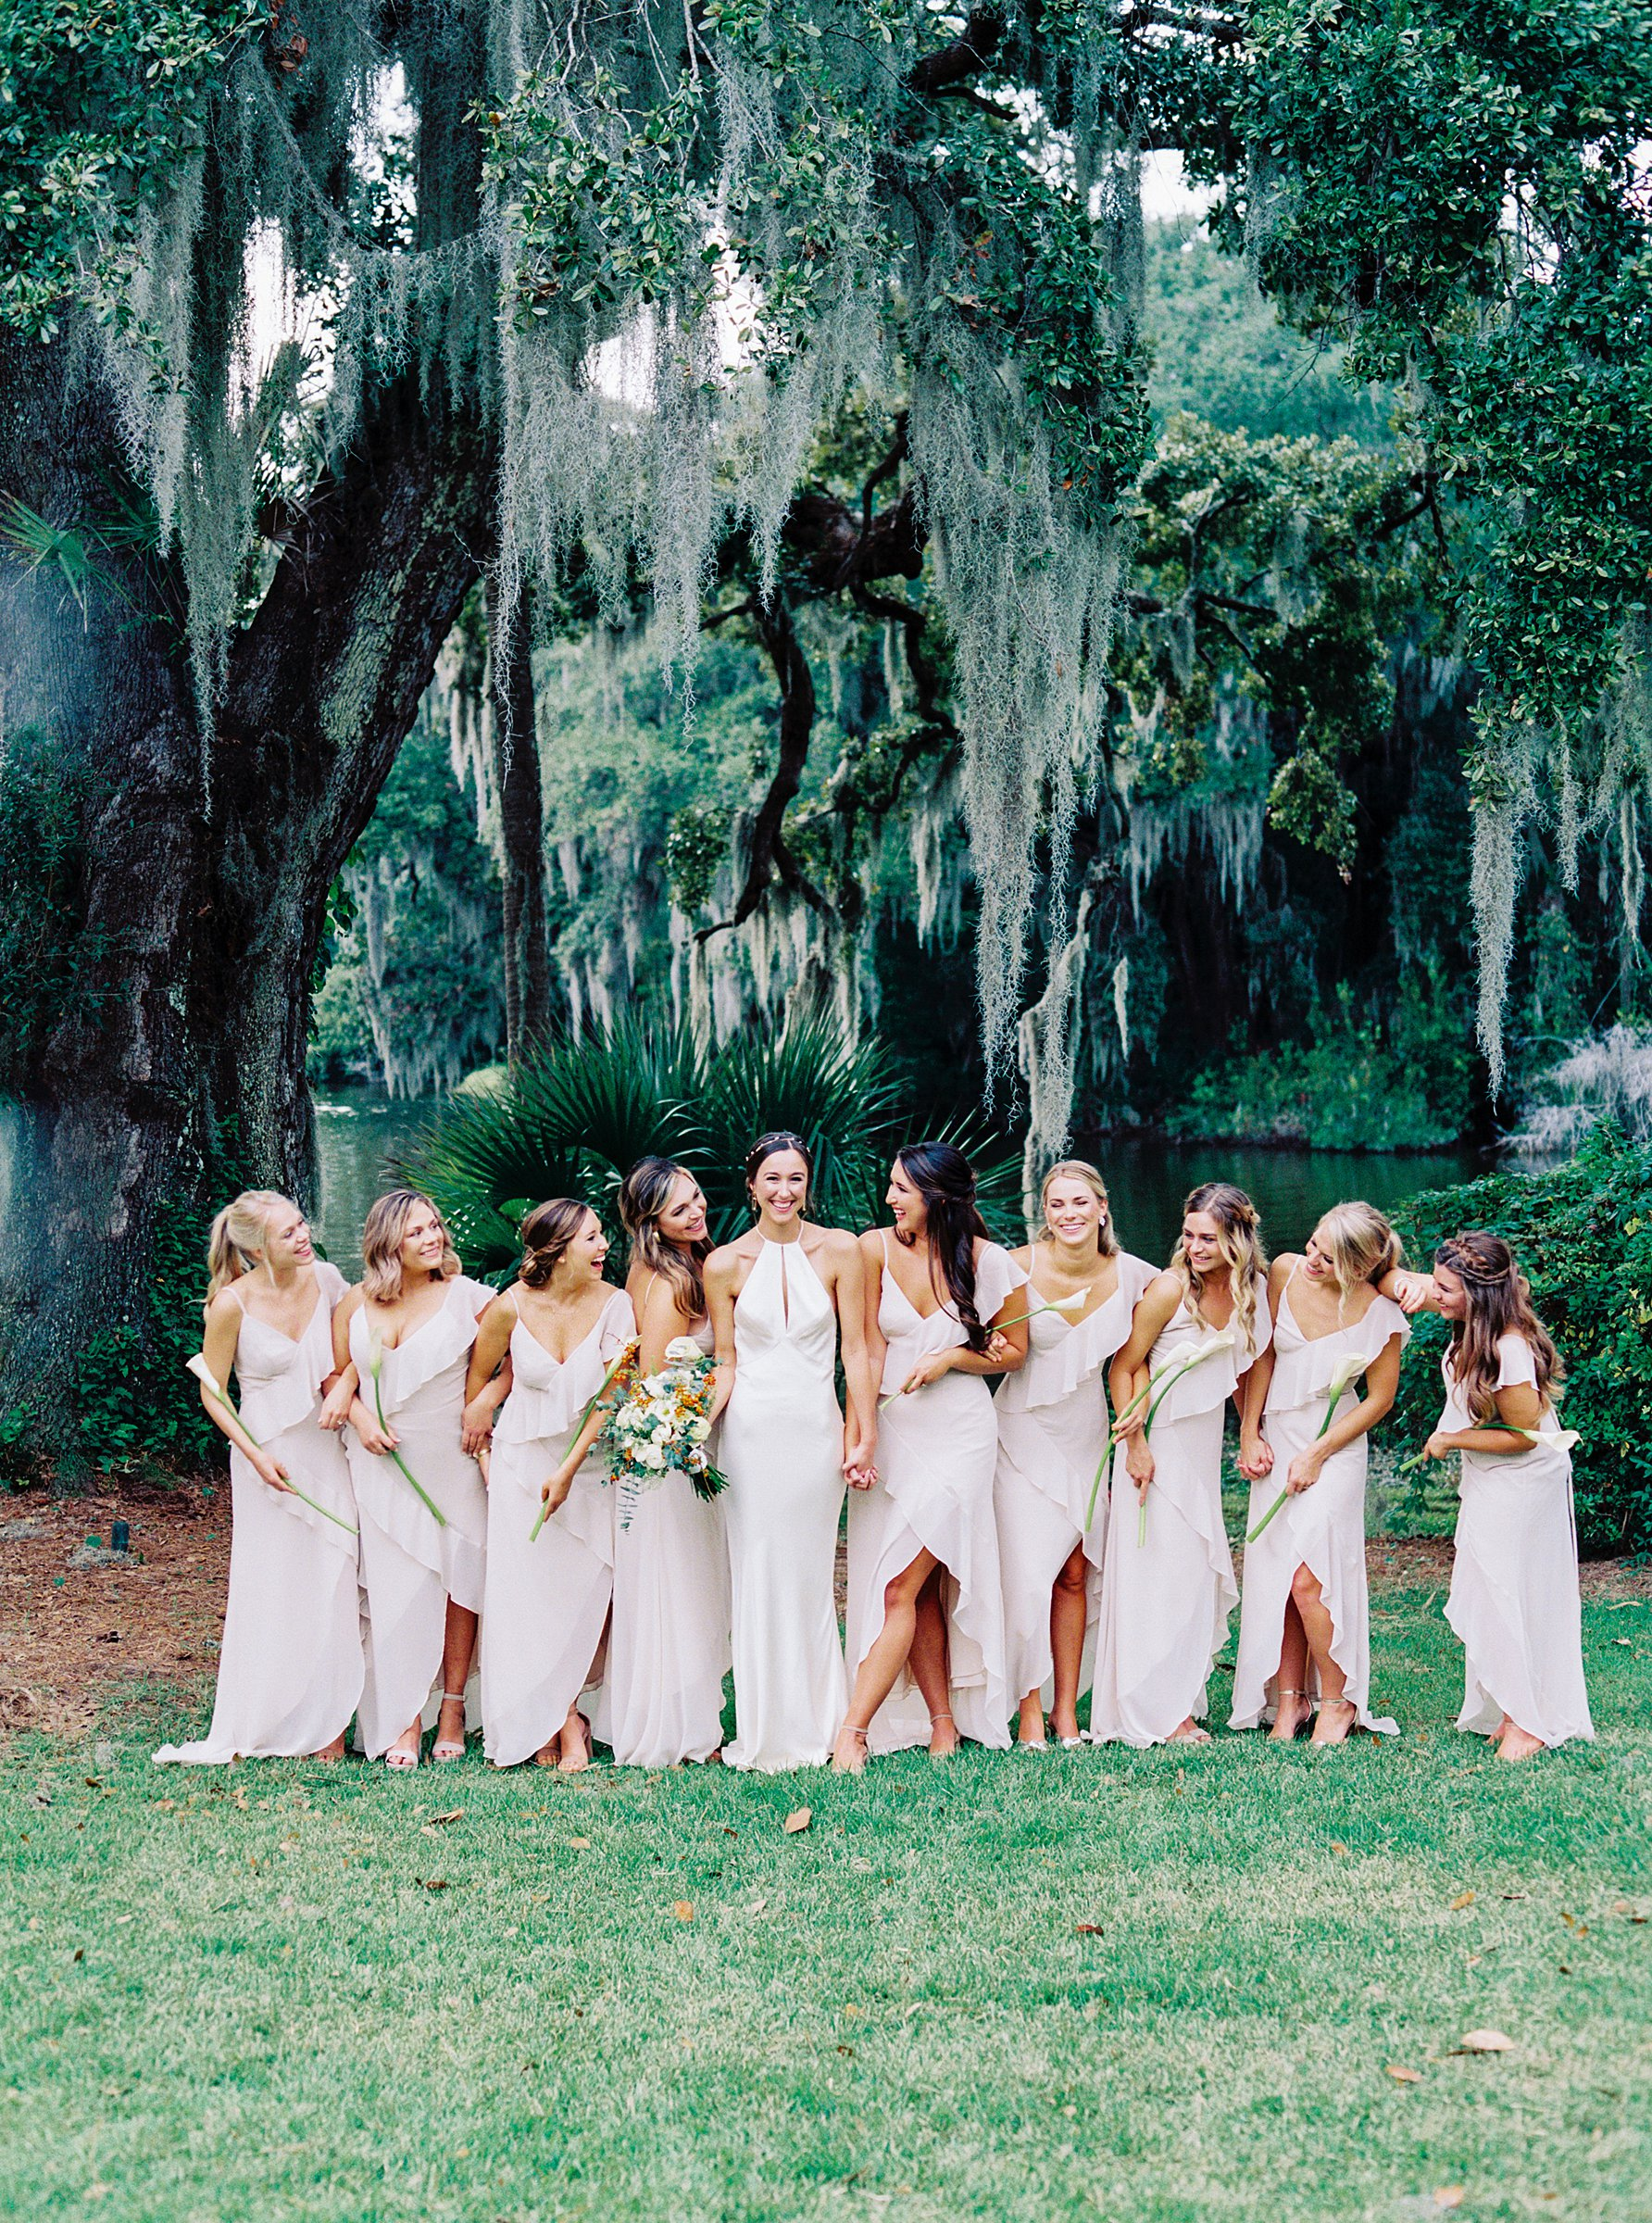 bridesmaids at charleston sc wedding venue legare waring captured on kodak portra 800 film with a contax 645